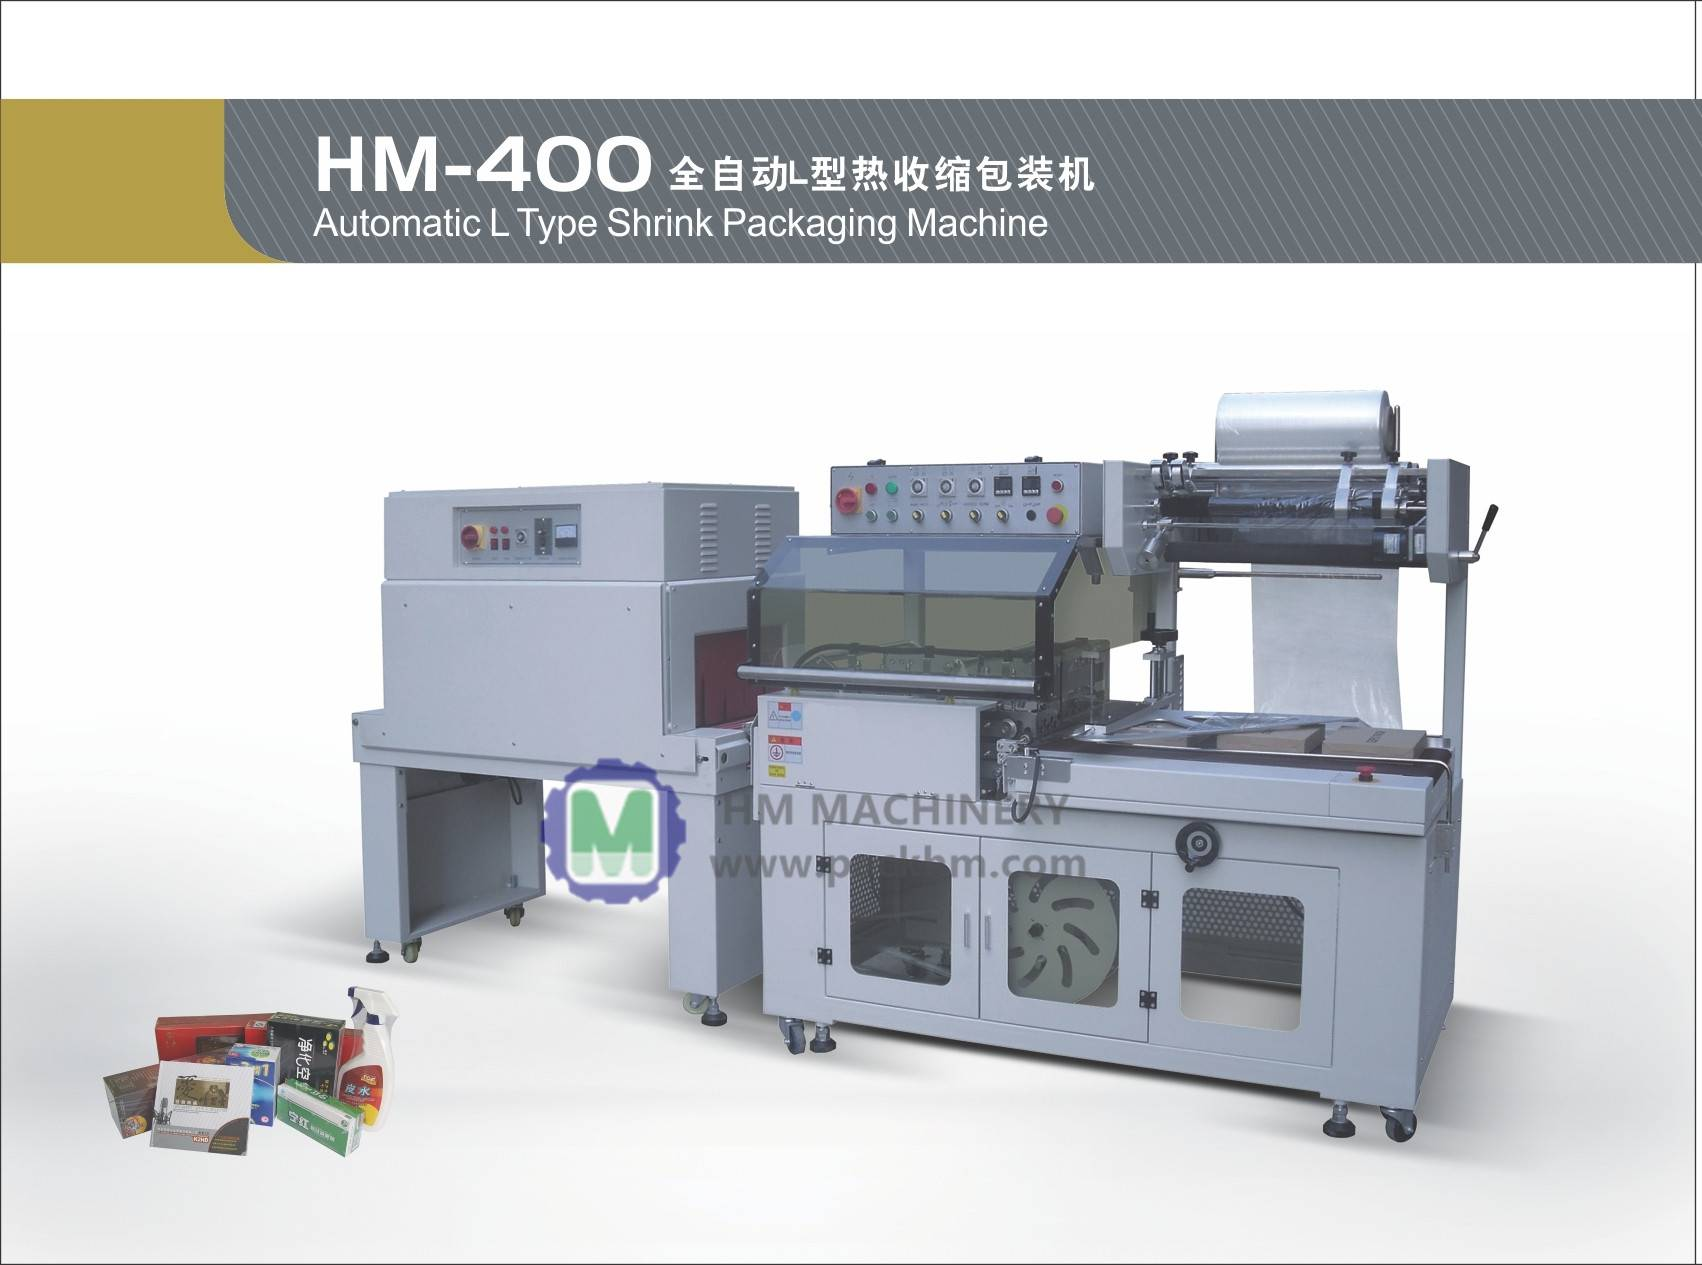 HM400 Automatic L Type Shrink Packaging Machine